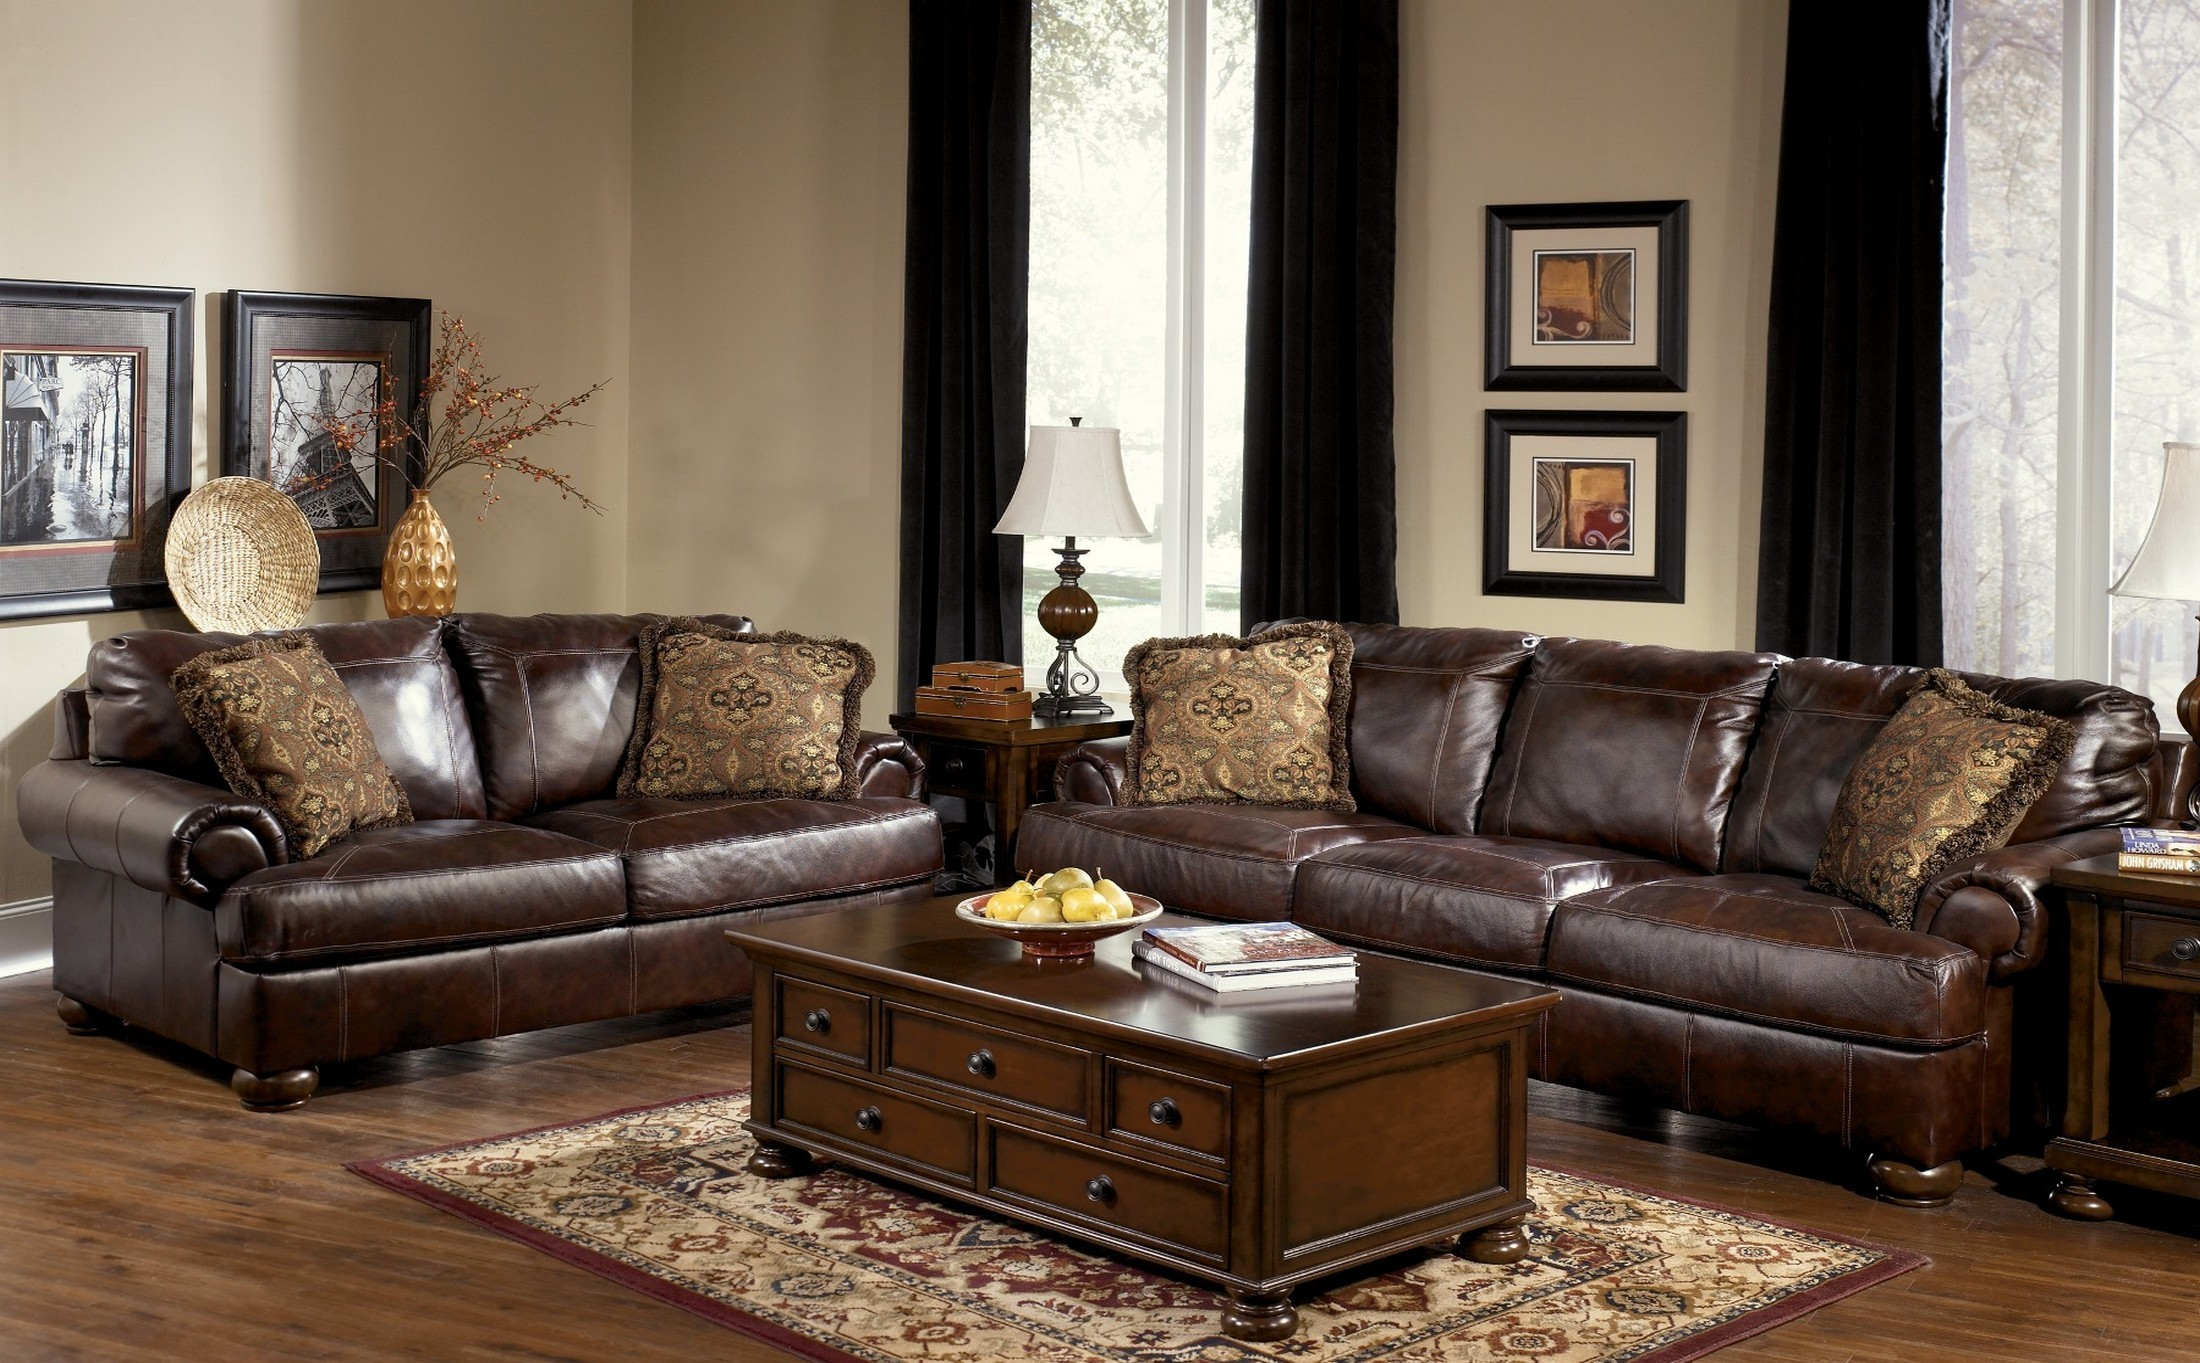 Axiom Walnut Living Room Set From Millennium By Ashley · 2295635 · 1930406 Part 9